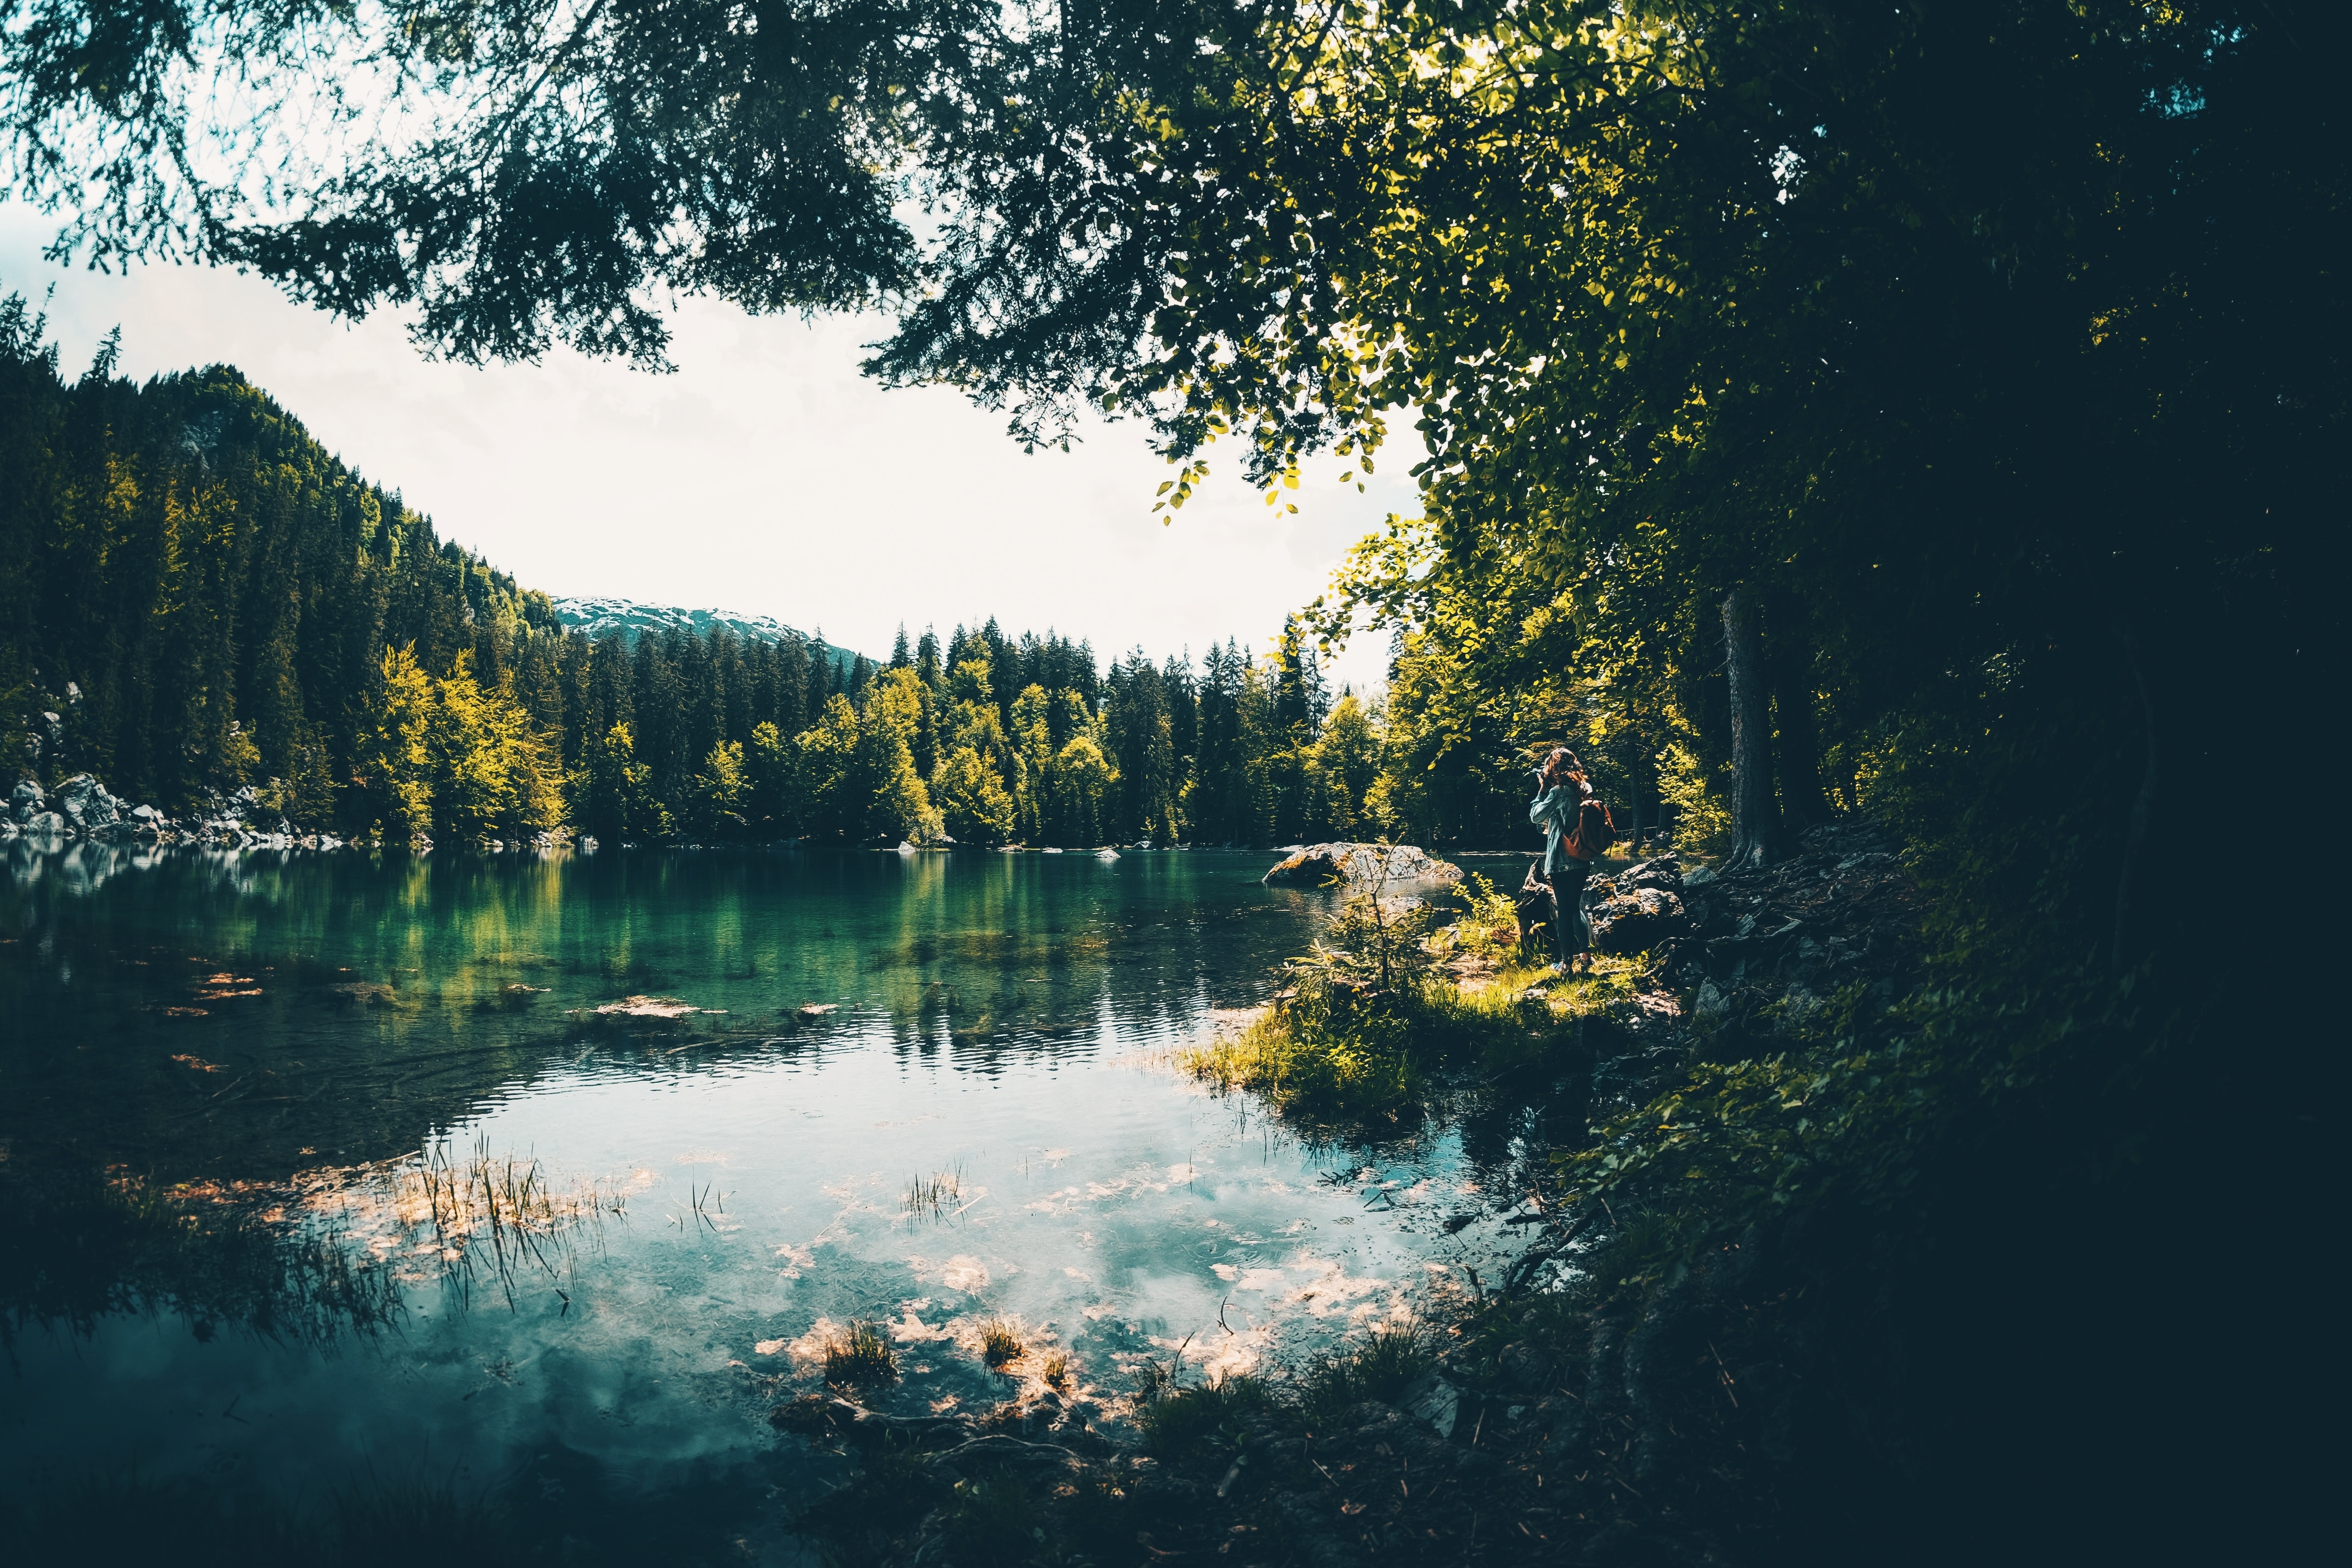 lake surrounded by green trees